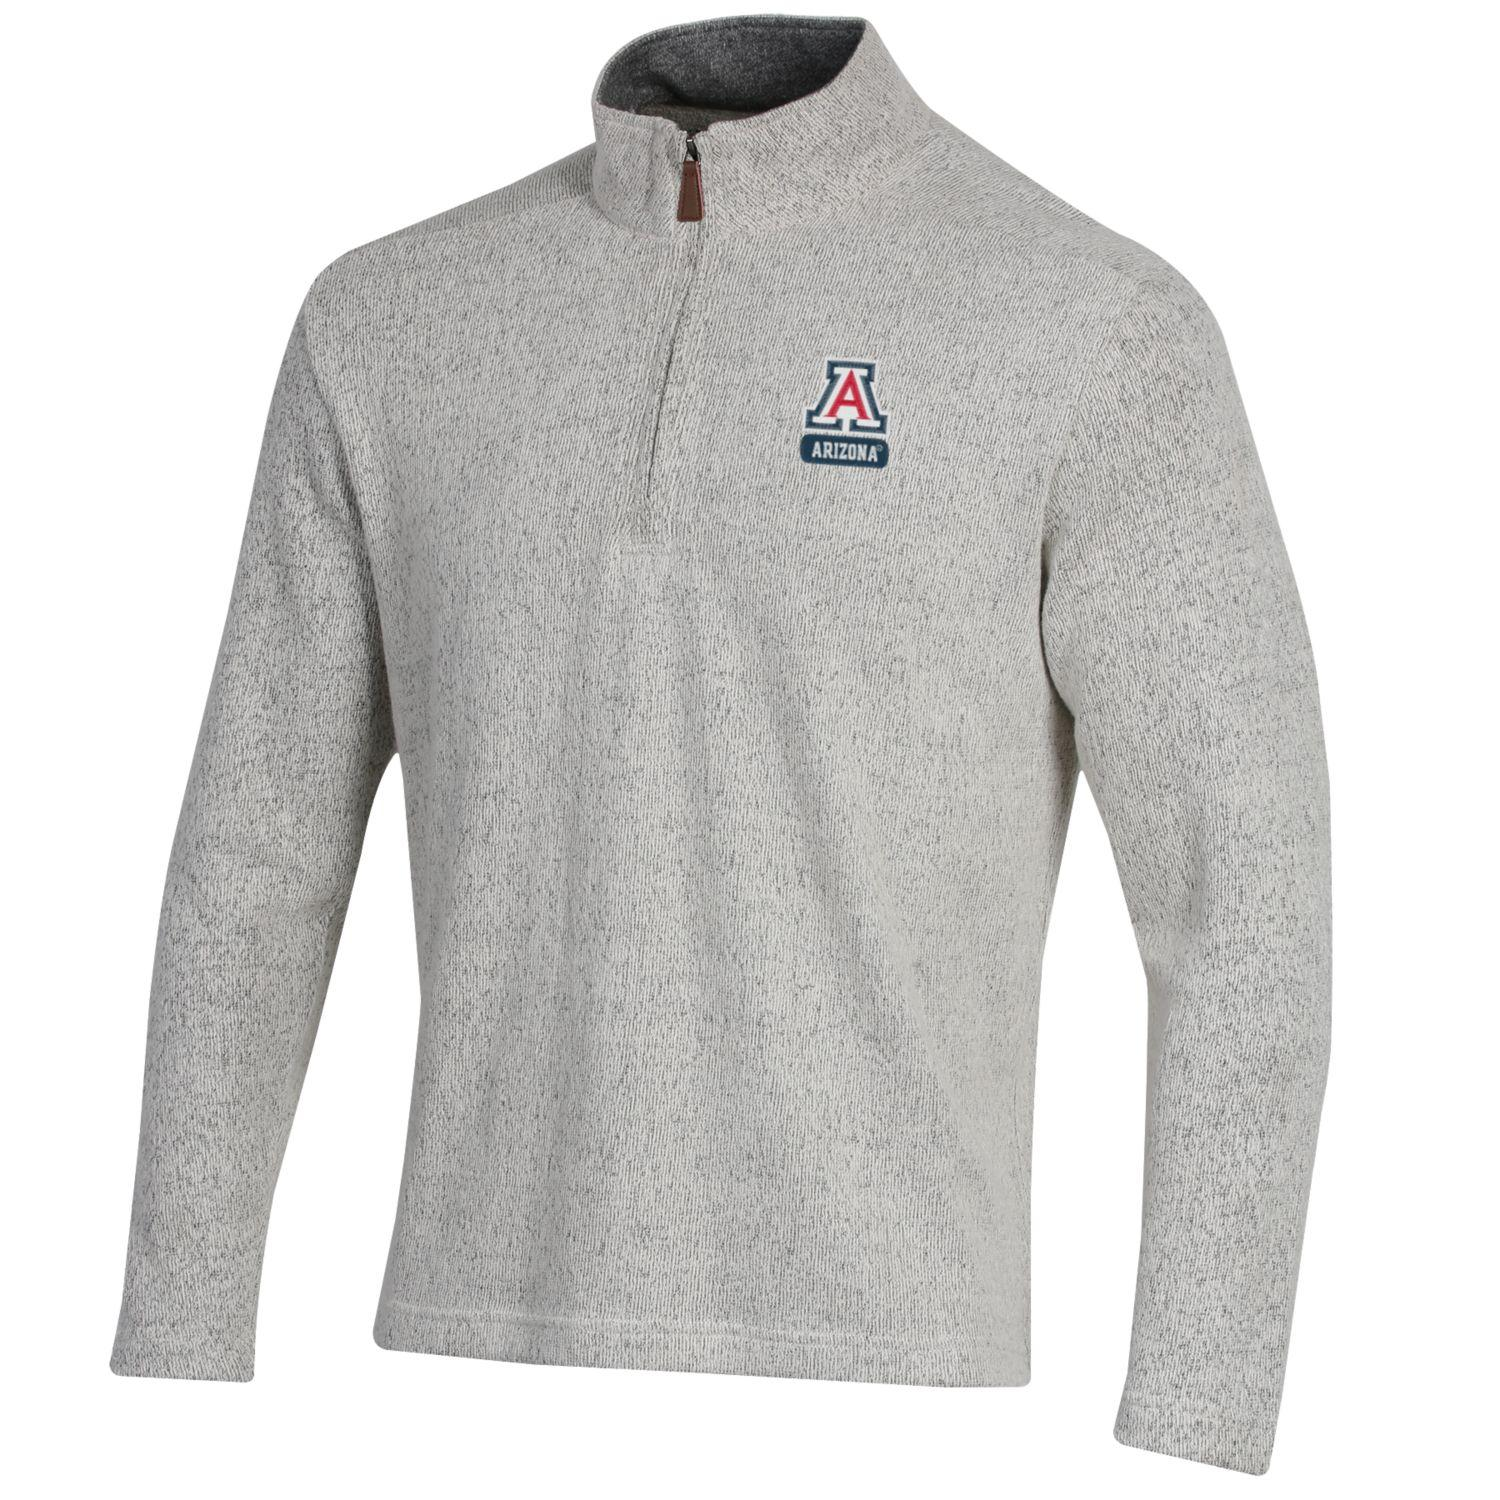 Image For Gear for Sports: Arizona Seaport 1/4 Zip Pullover - Oatmeal